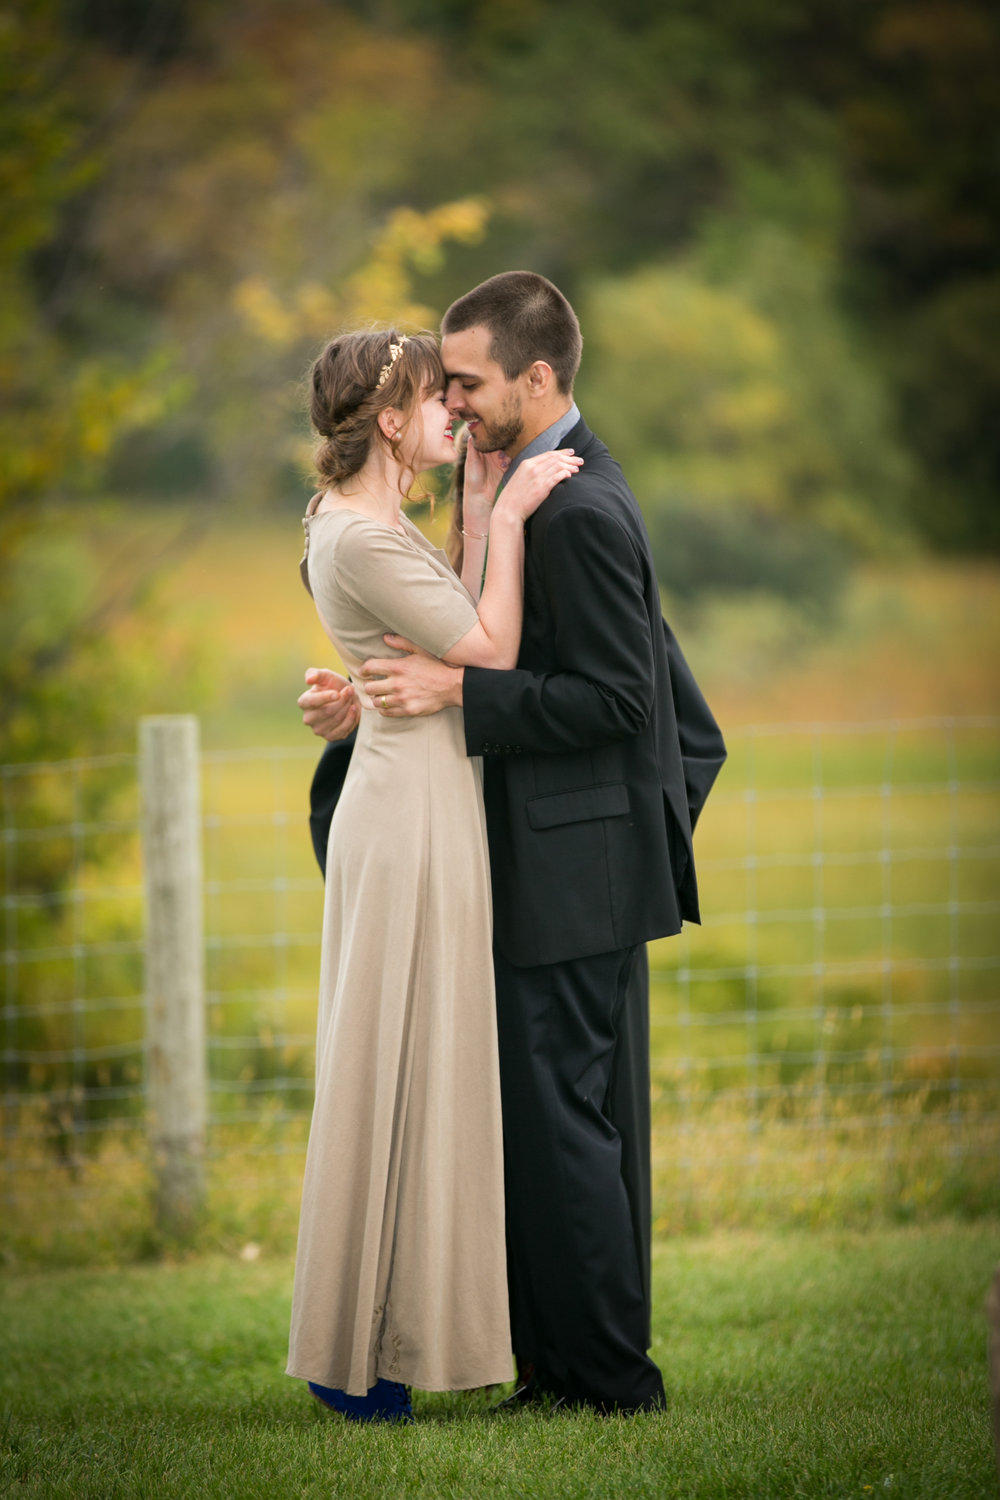 wedding-elopement-photographer-vail-axelphoto.jpg